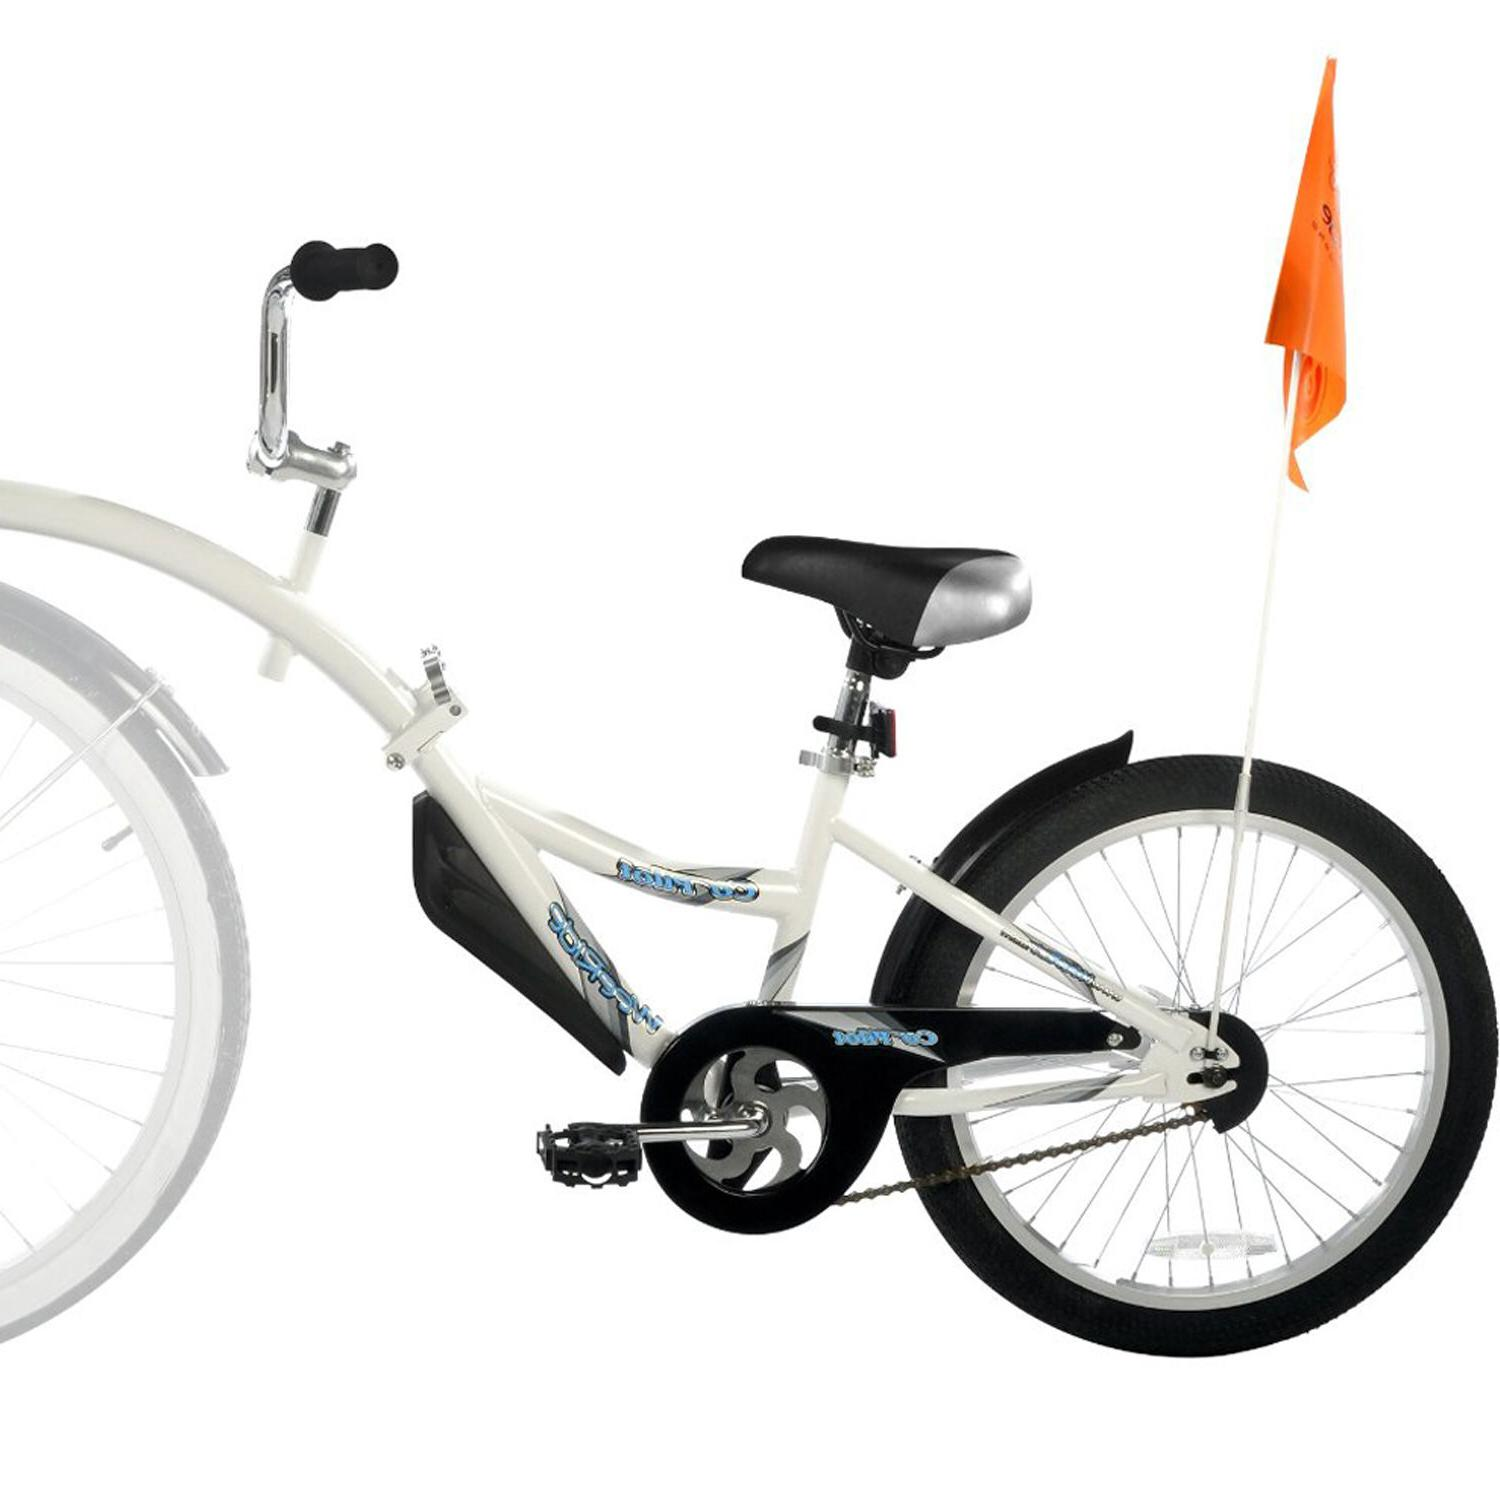 New Tag Along Trailer for Child Ride Attachment Training Tandem